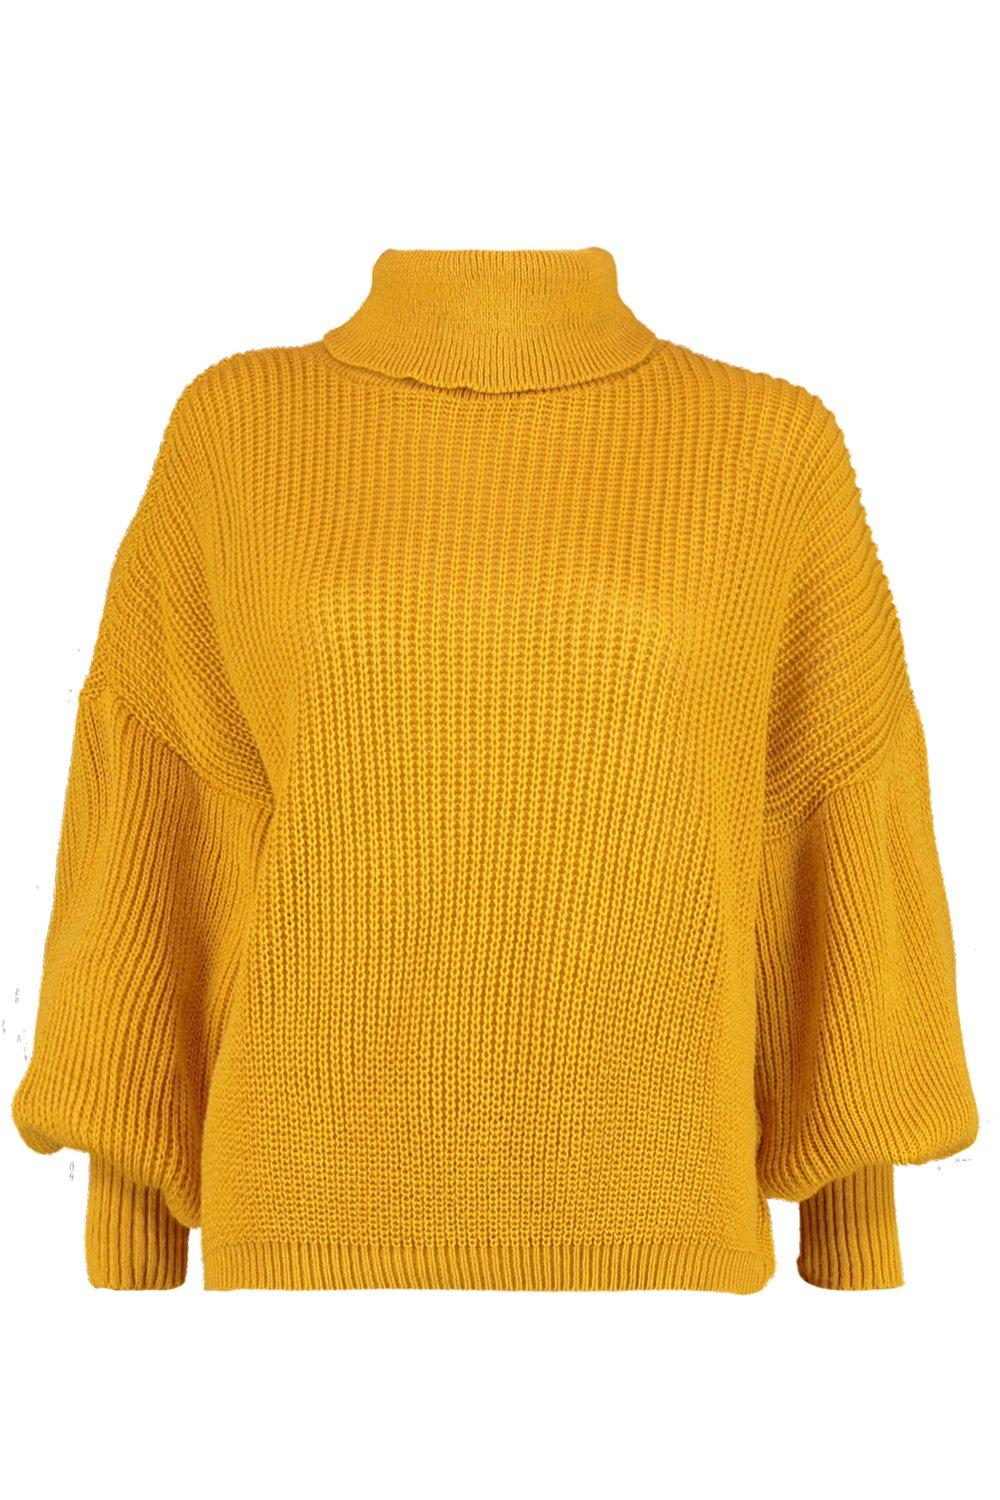 Neck Roll Balloon Knitted mustard Sleeve Jumper gnvdTwqO